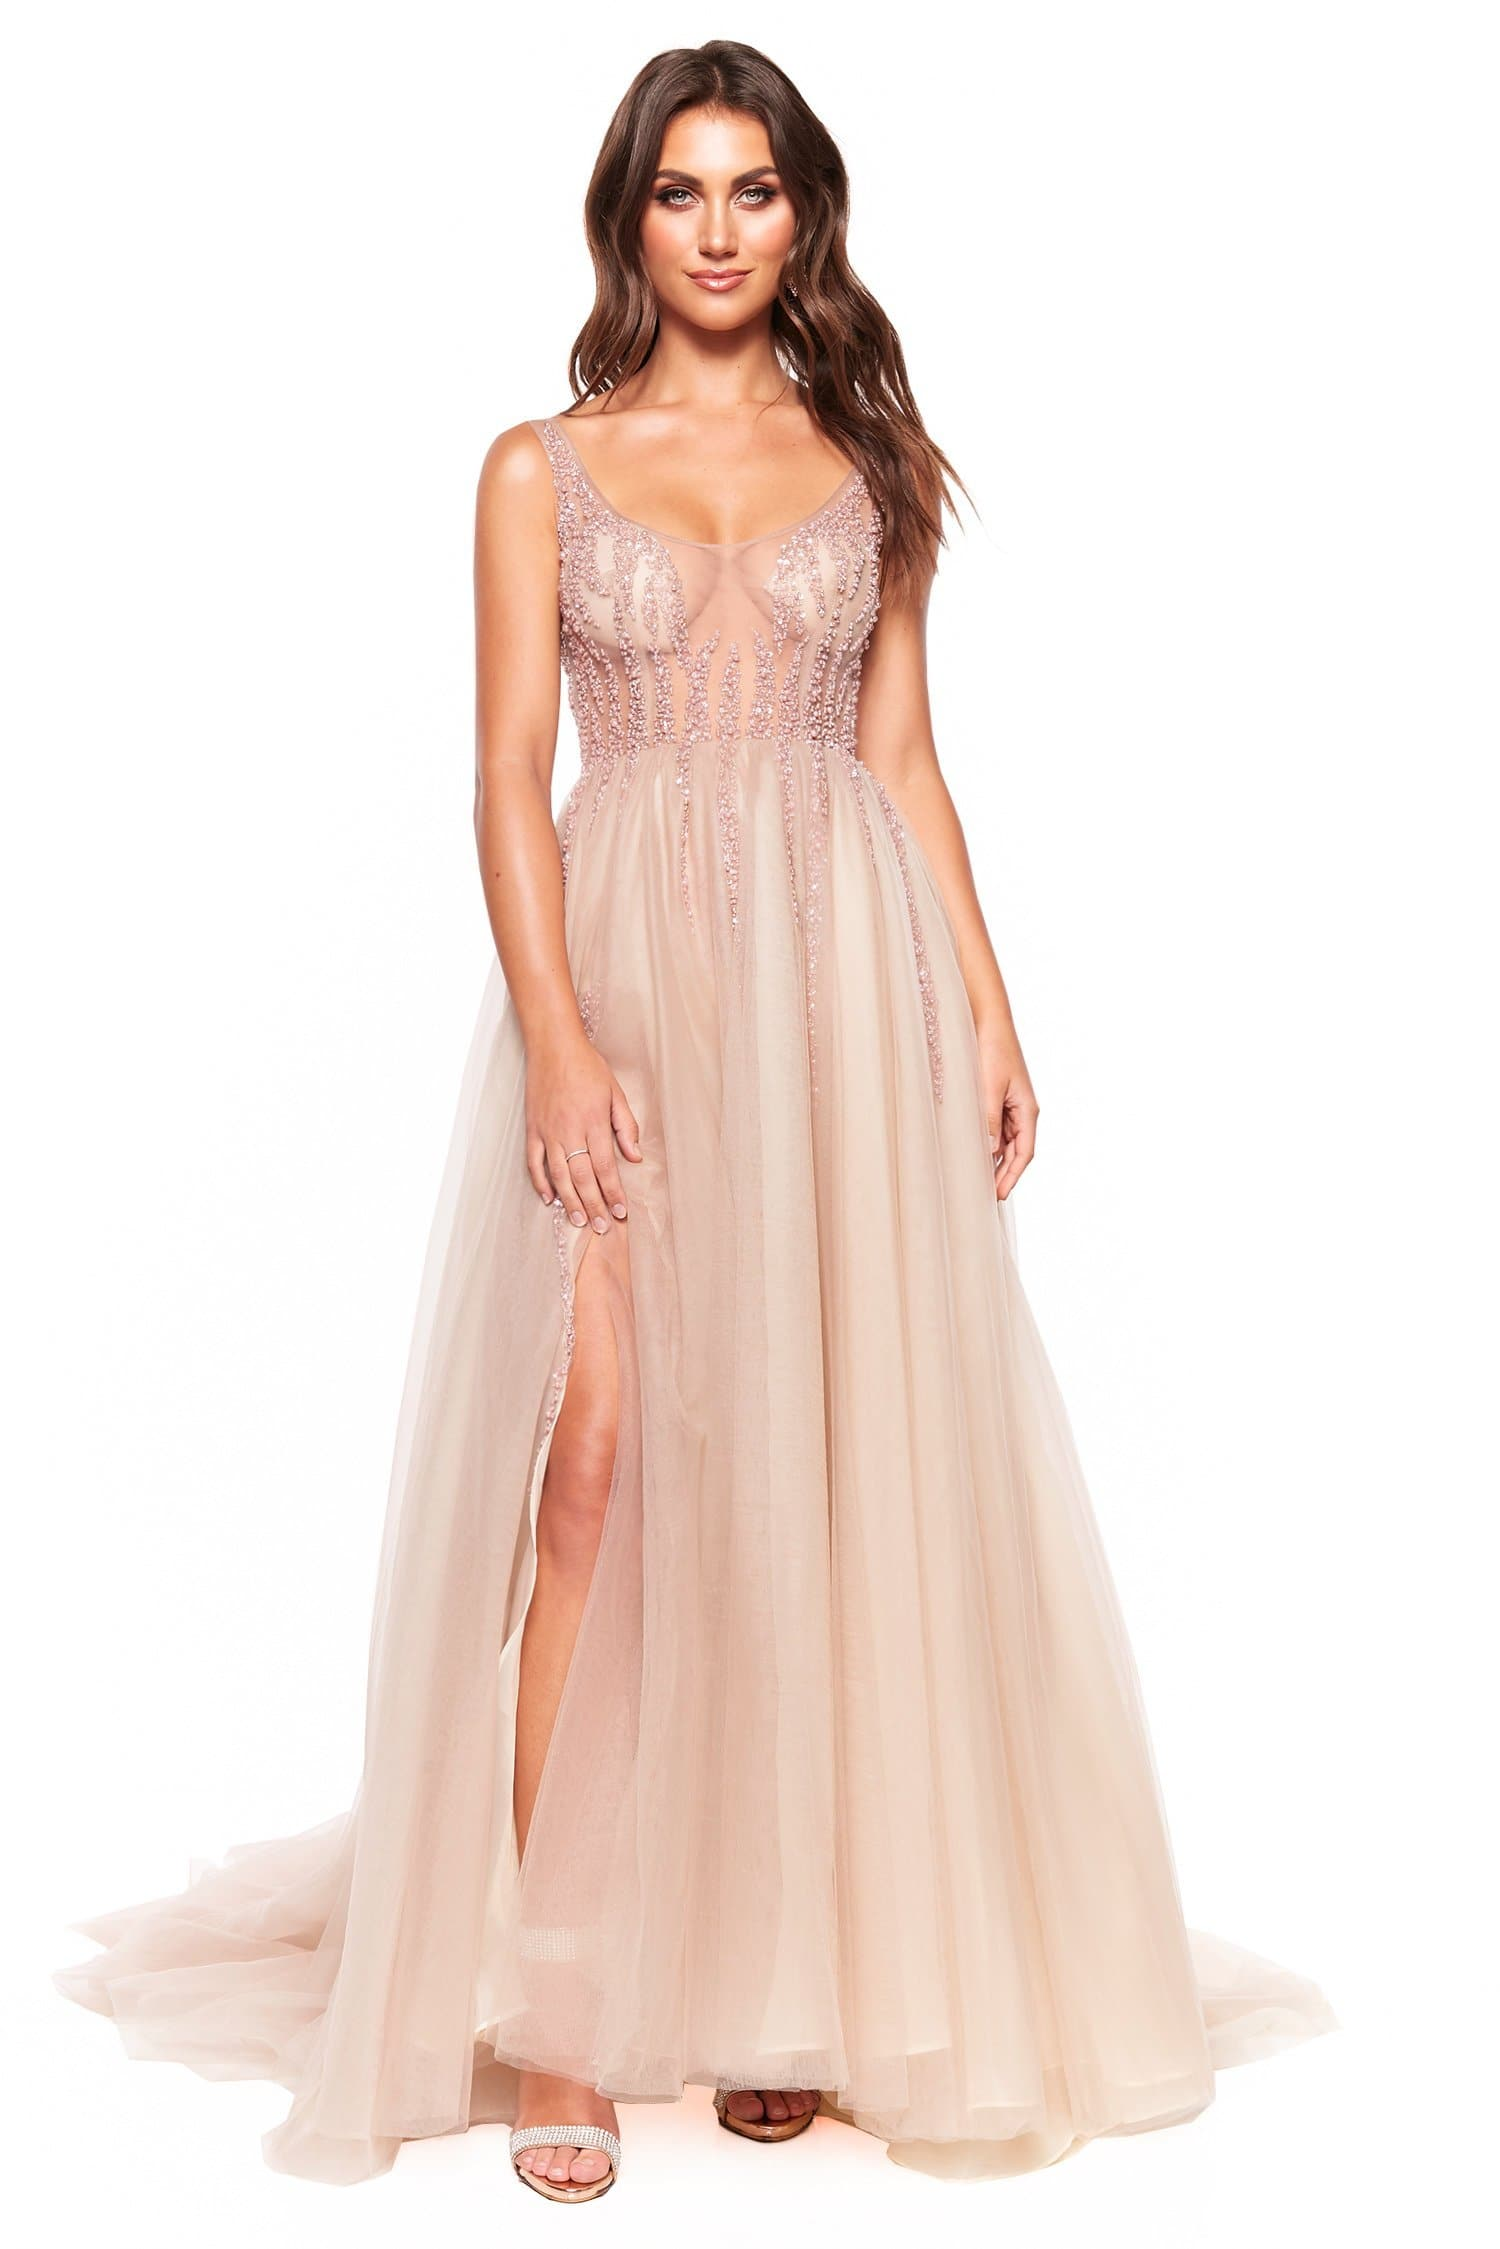 A&N Luxe Rosie - Nude & Pink Tulle Gown with Sheer Beaded Bodice